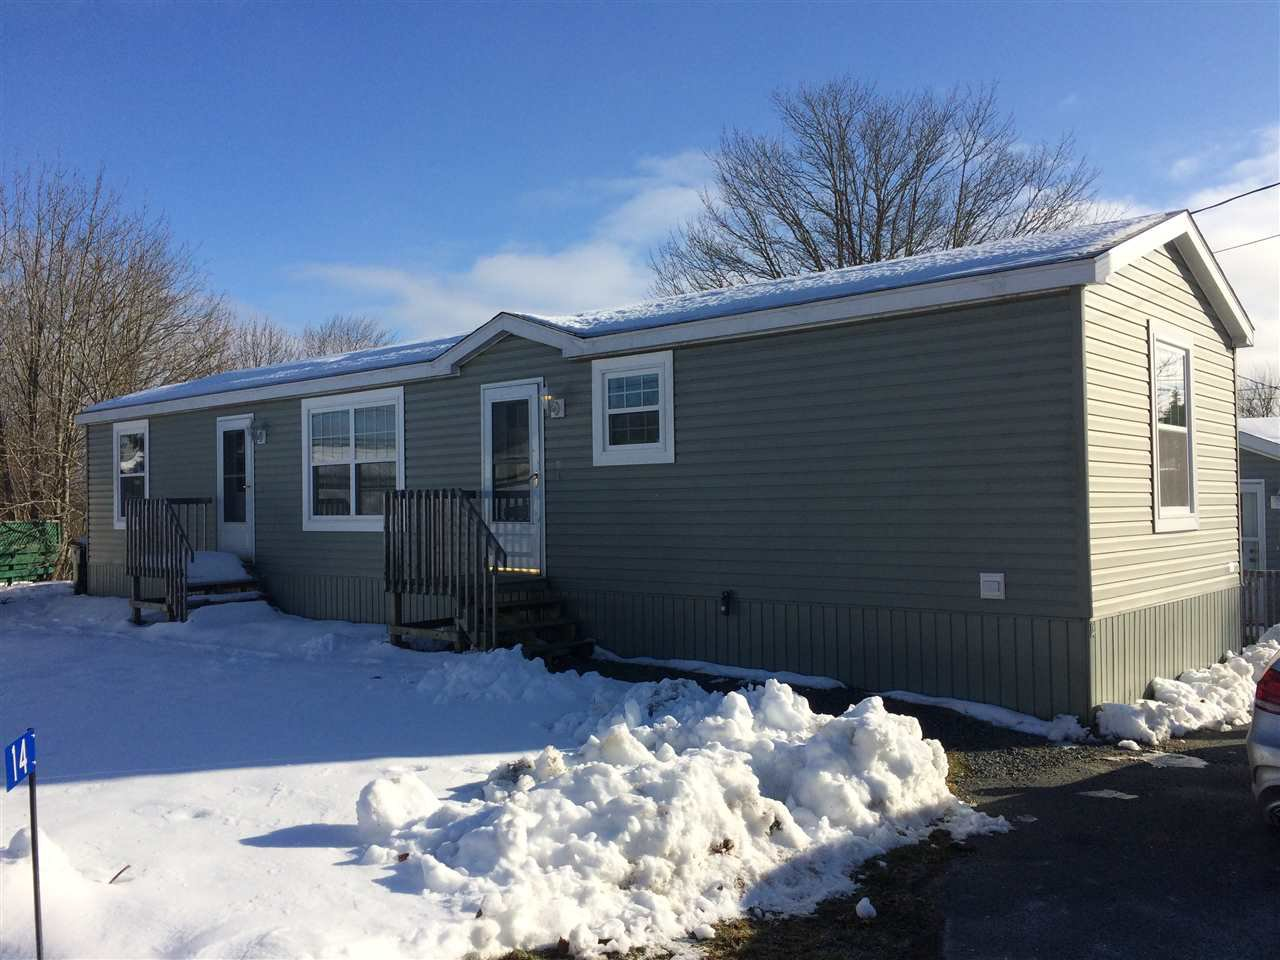 Main Photo: 14 THIRD Street in Lakeside: 40-Timberlea, Prospect, St. Margaret`S Bay Residential for sale (Halifax-Dartmouth)  : MLS®# 201600324